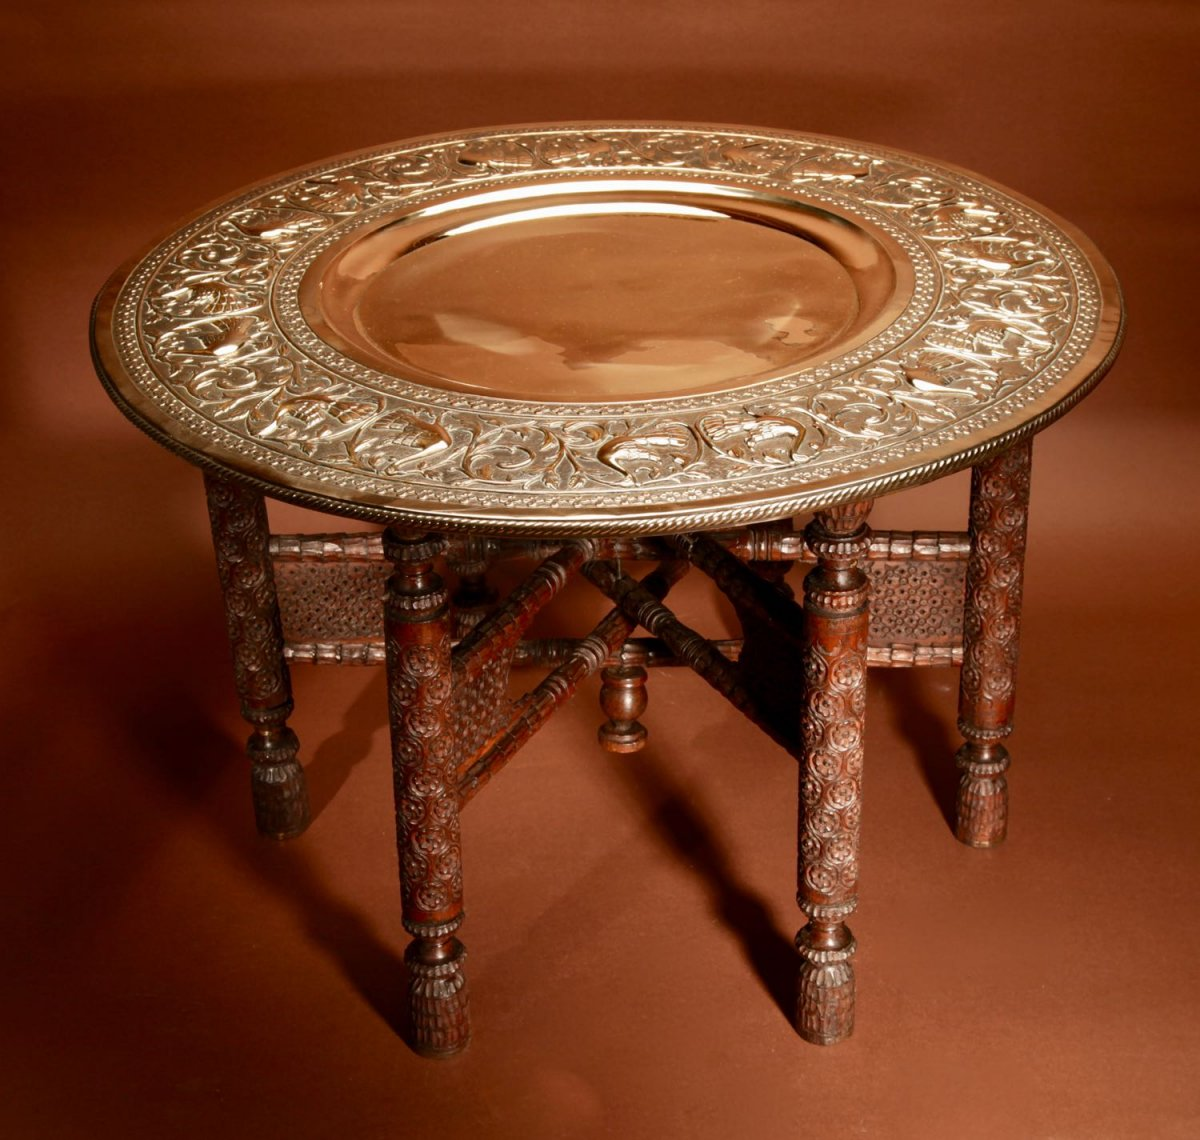 A Very Decorative Anglo Indian Middle Eastern Possible Mughal Empire Folding Coffee Table. Circ